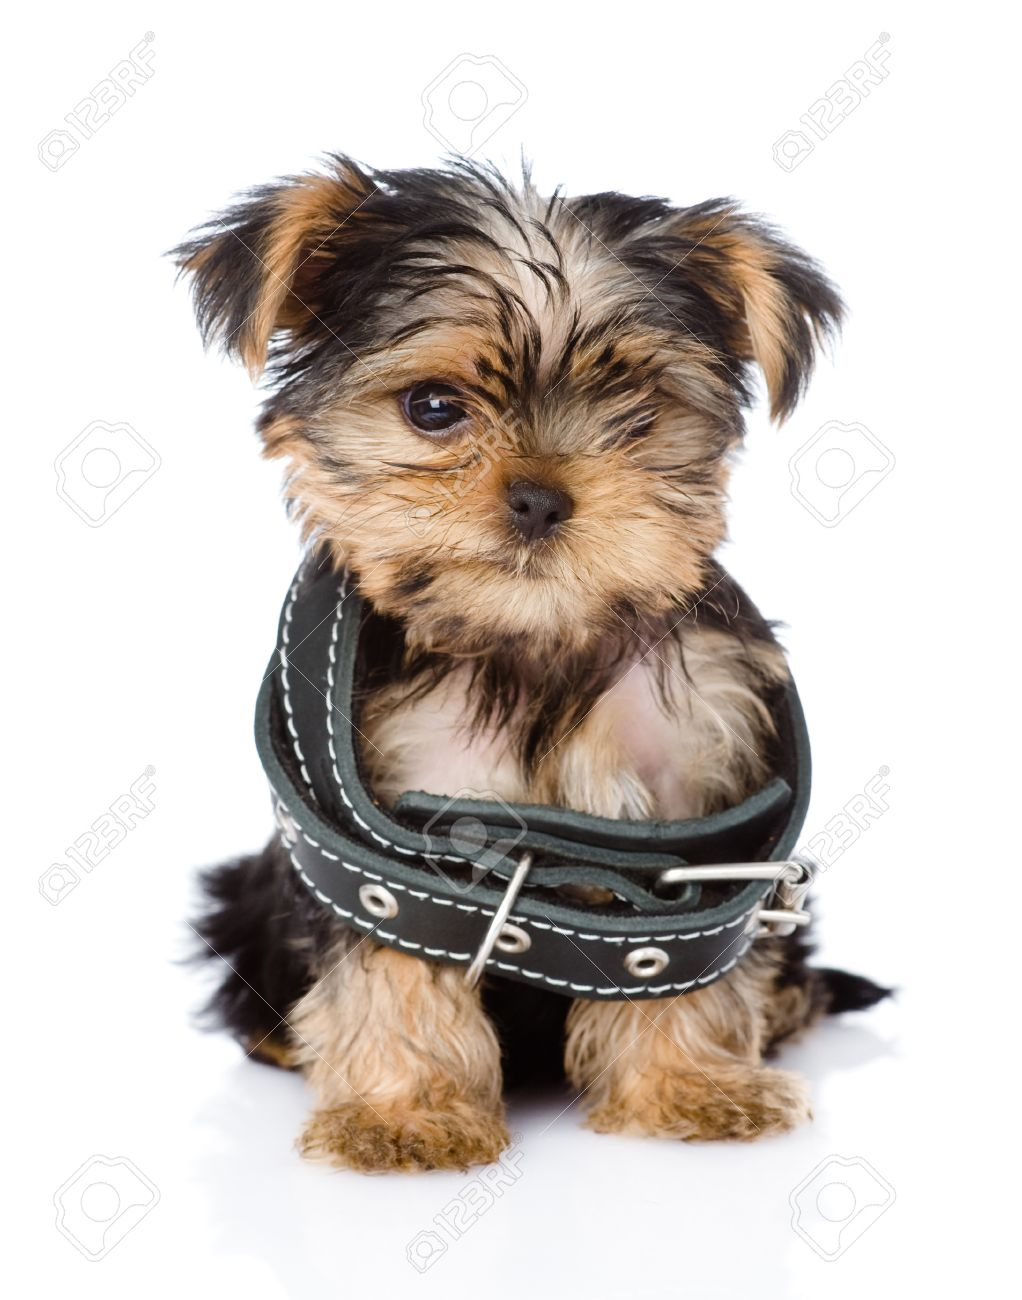 Background image too big - Little Yorkshire Terrier Puppy Wearing Dog Collar That Is Too Big Isolated On White Background Stock